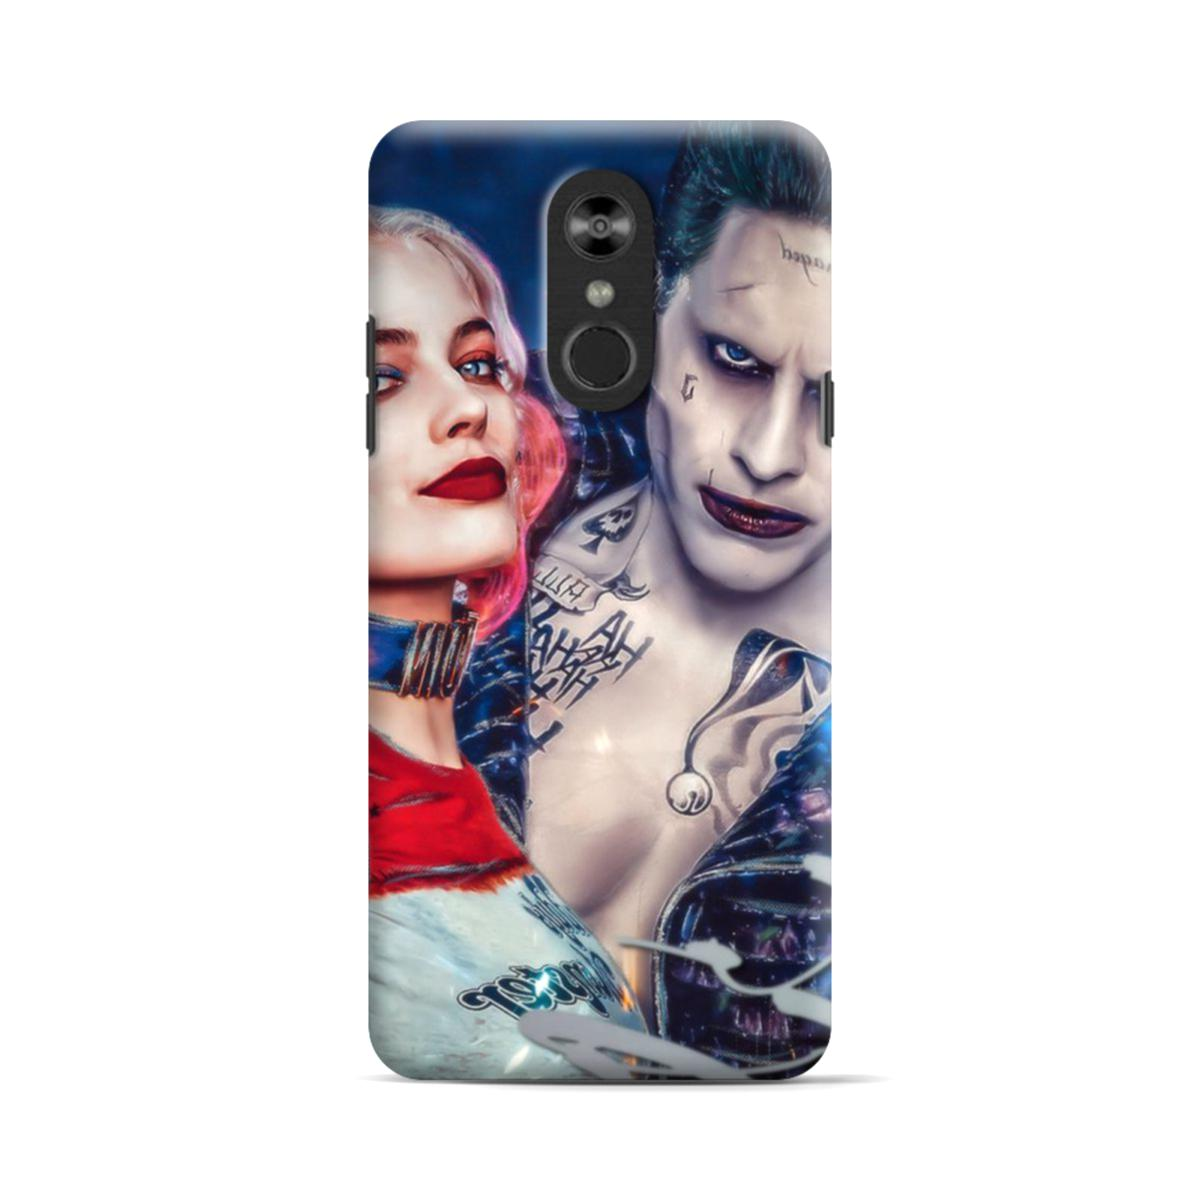 stylo harley d'occasion